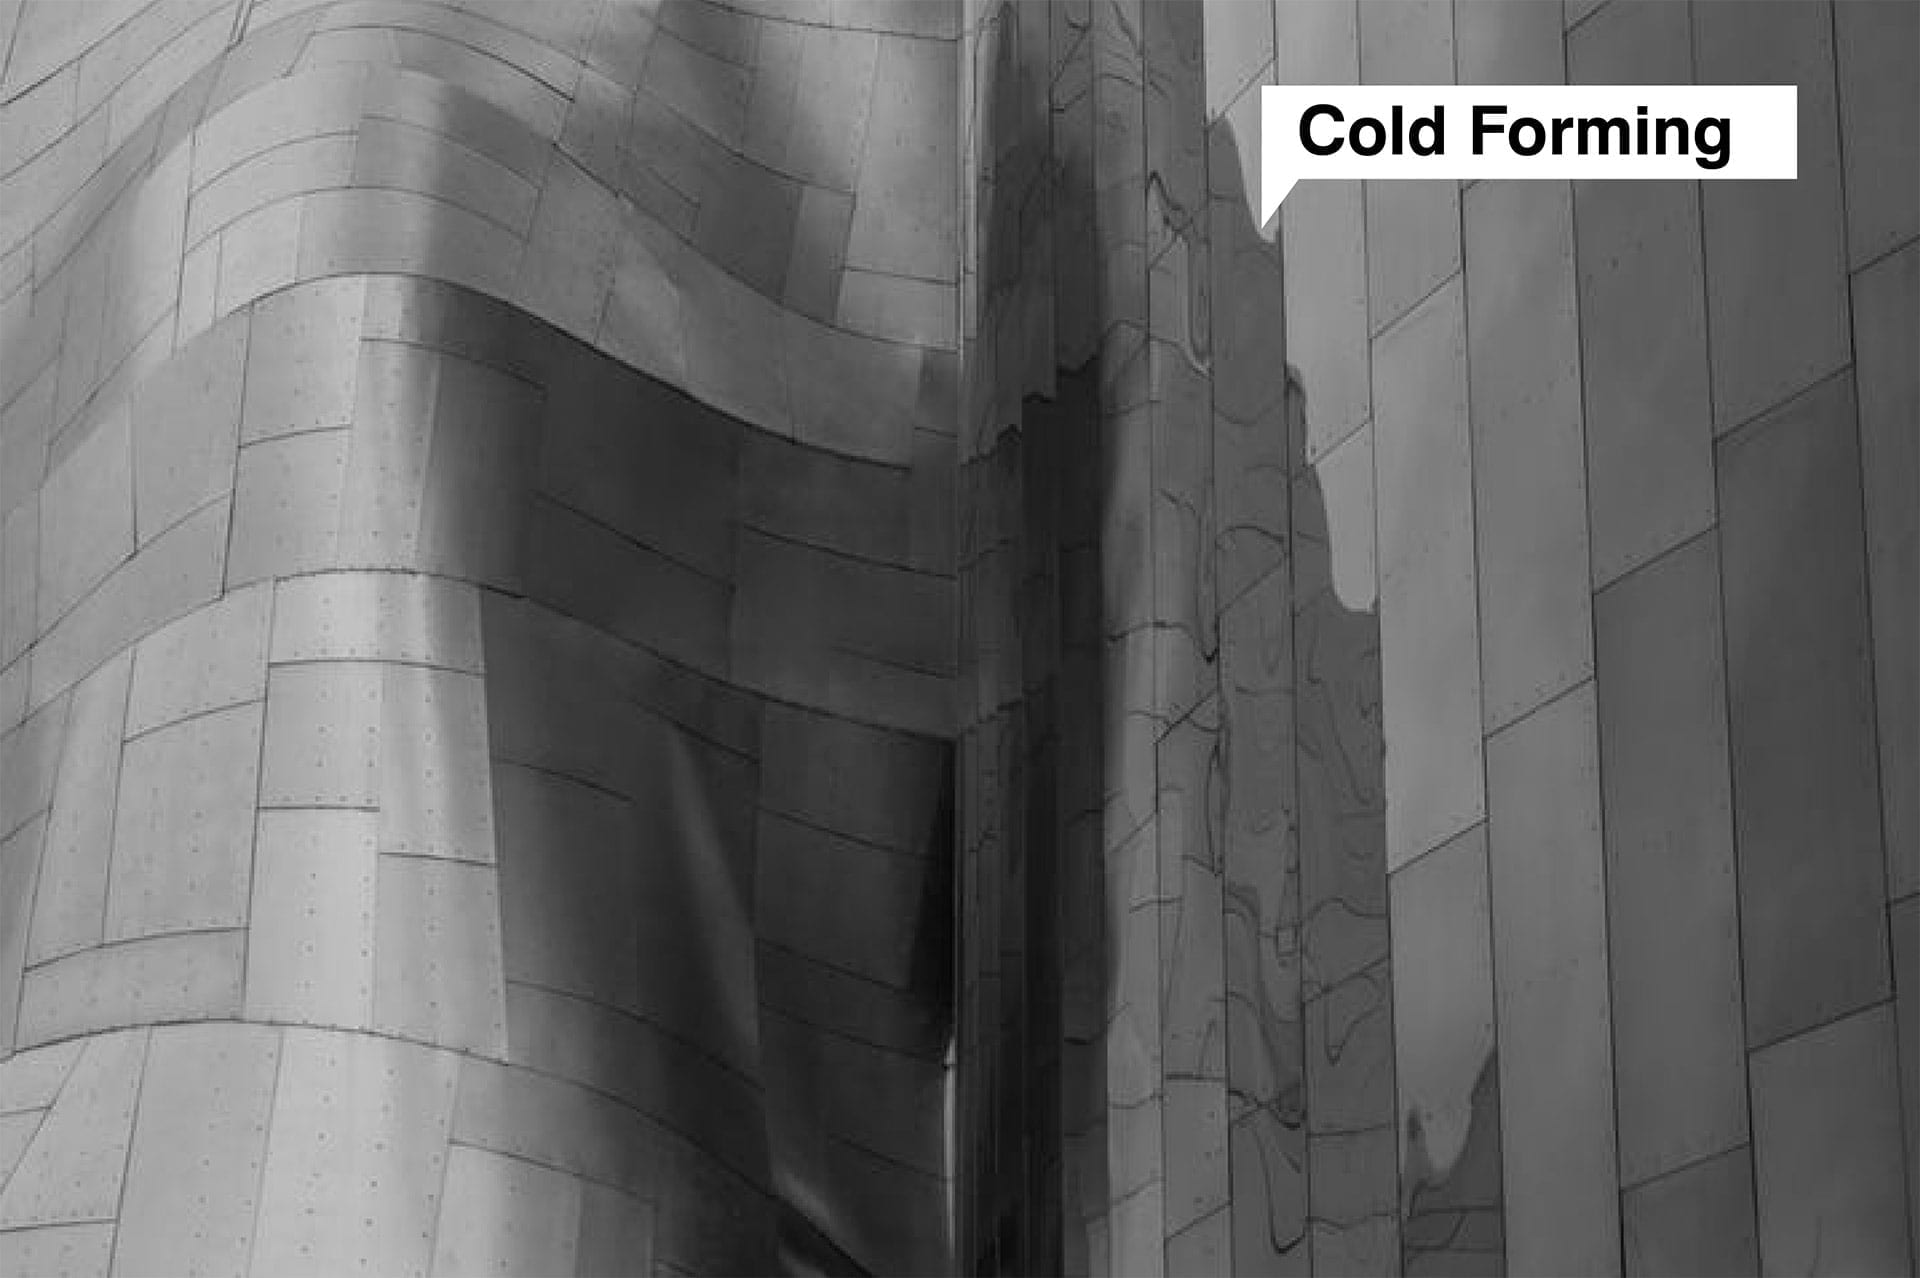 Museum of Pop Culture - Frank Gehry Partners, by A. Zahner Company, 2000.